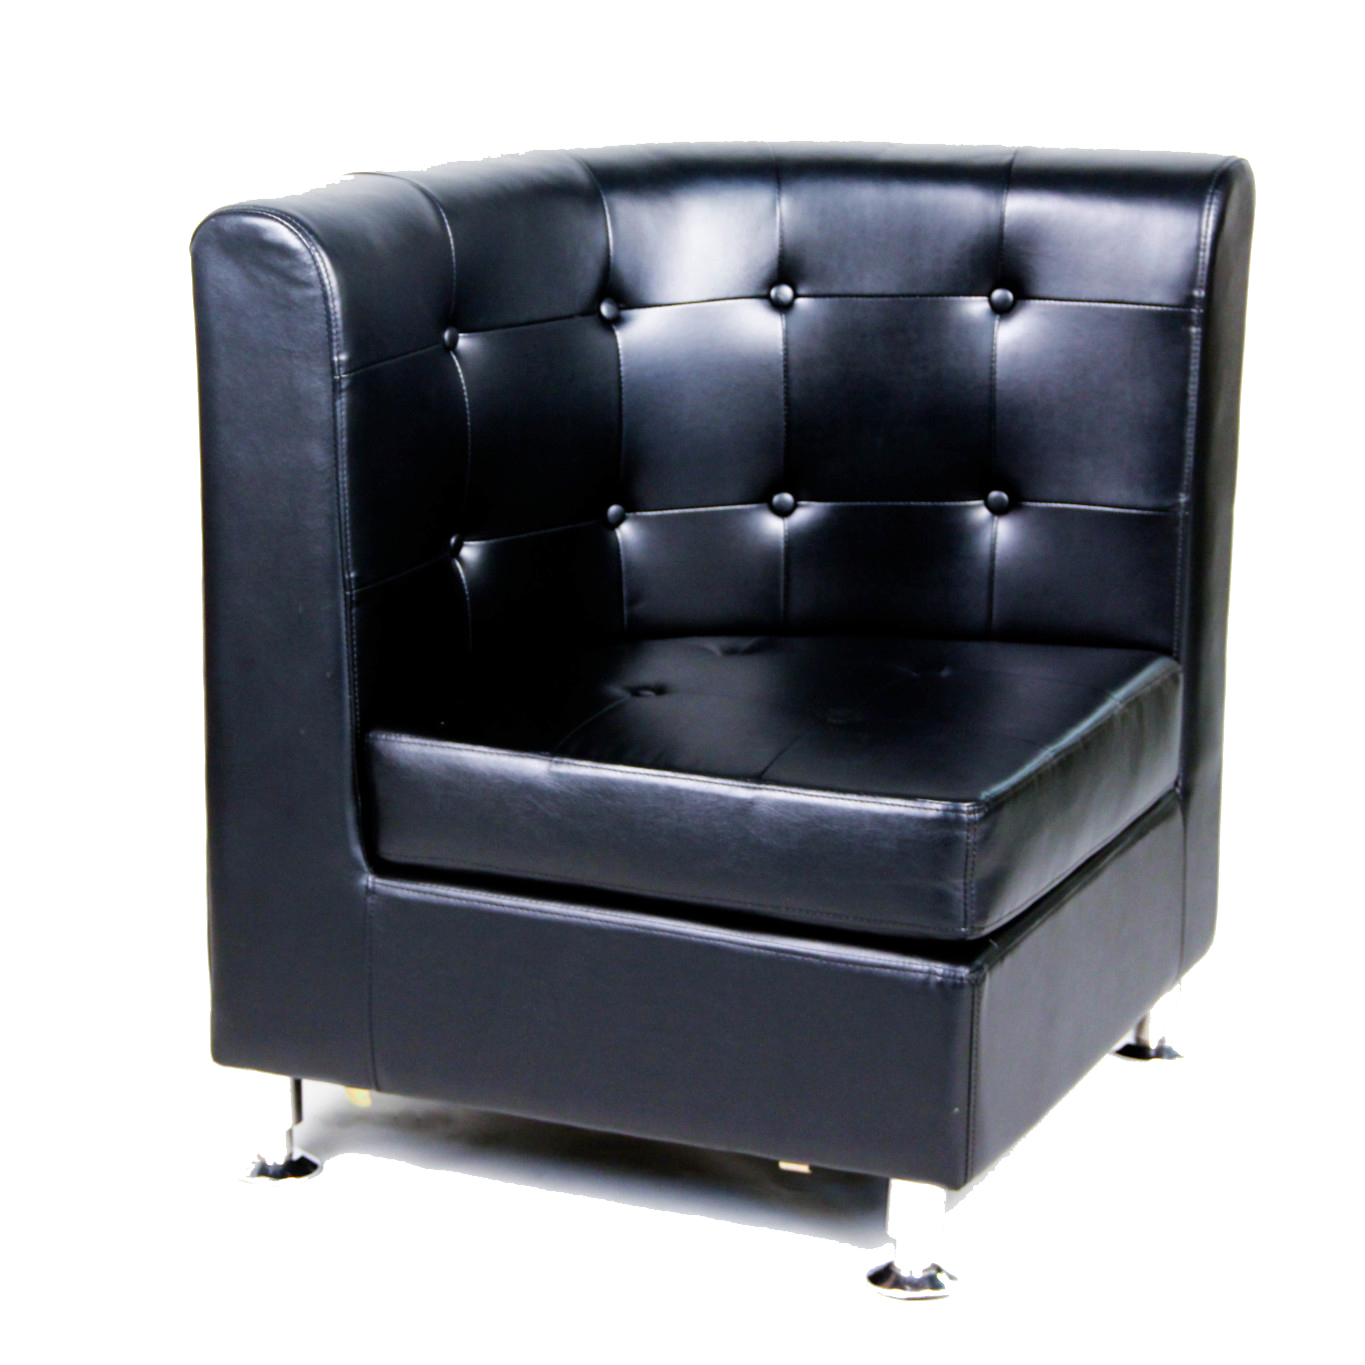 Rounded Black Tufted Chairs Corner Seat Peter Corvallis